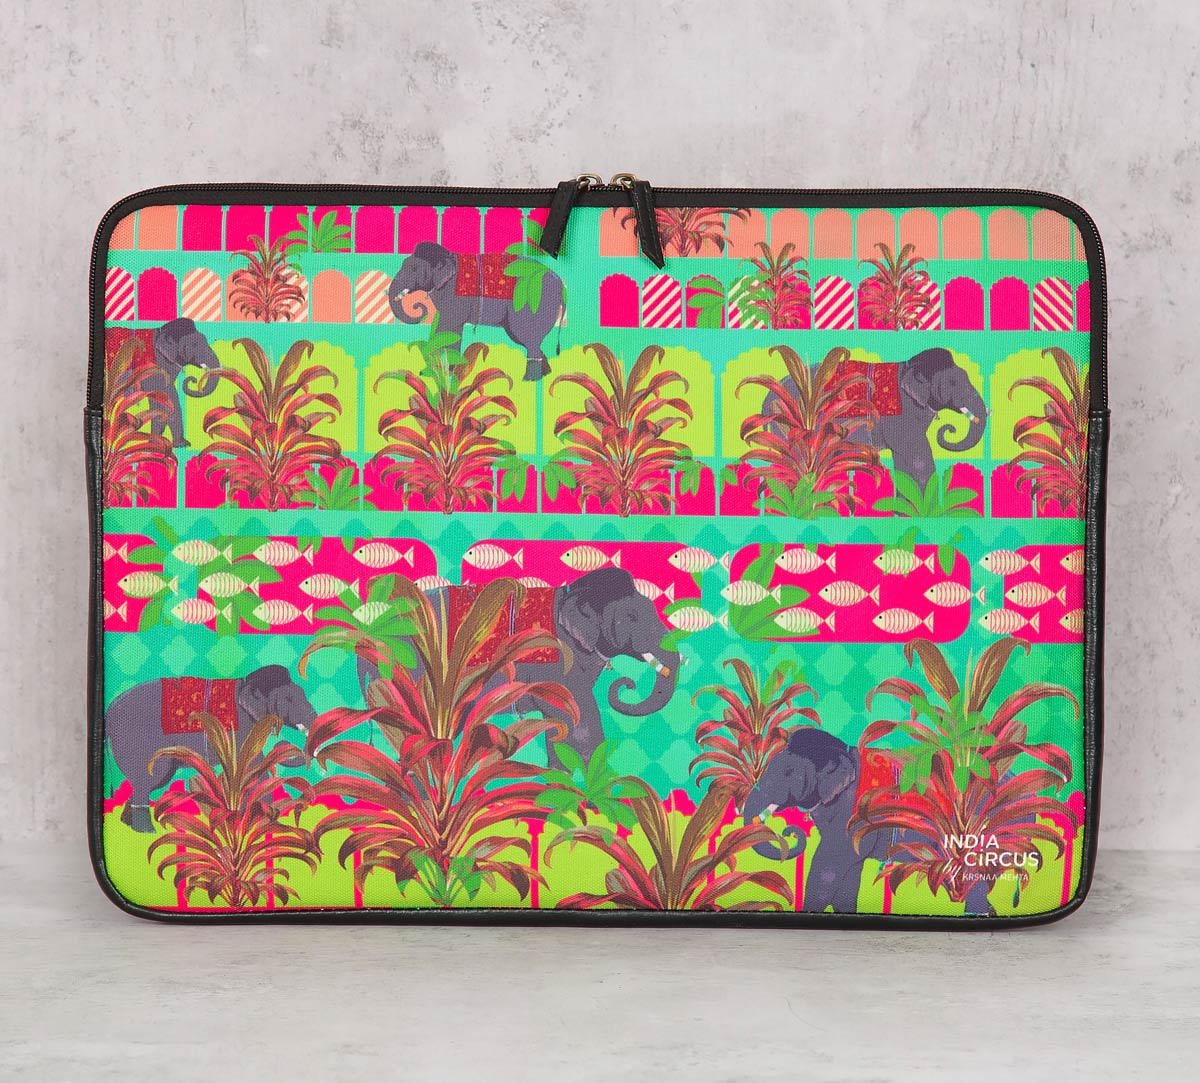 Countryside Tusker Laptop Sleeve